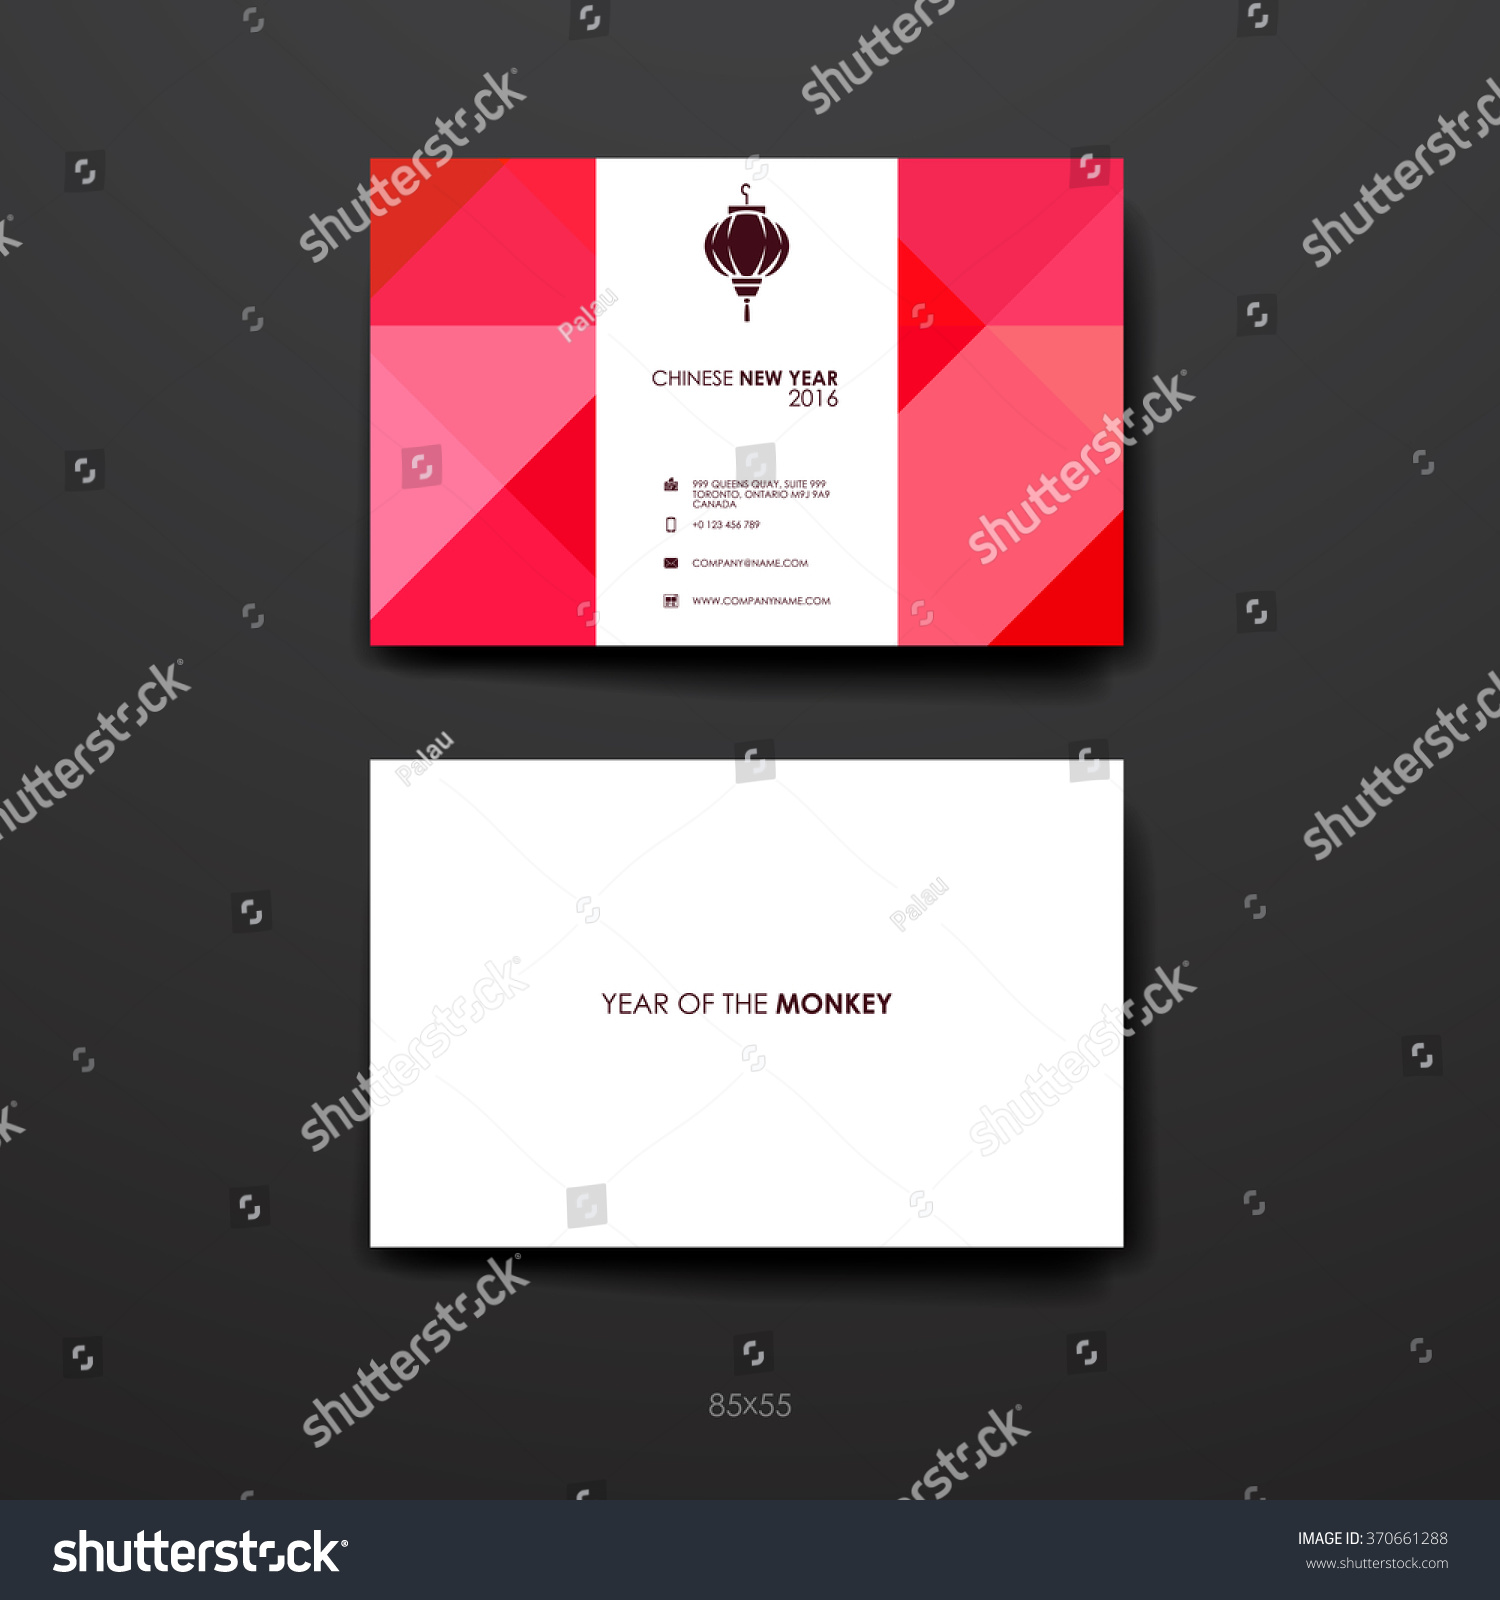 Set design business card template chinese stock vector 370661288 set of design business card template in chinese new year style colourmoves